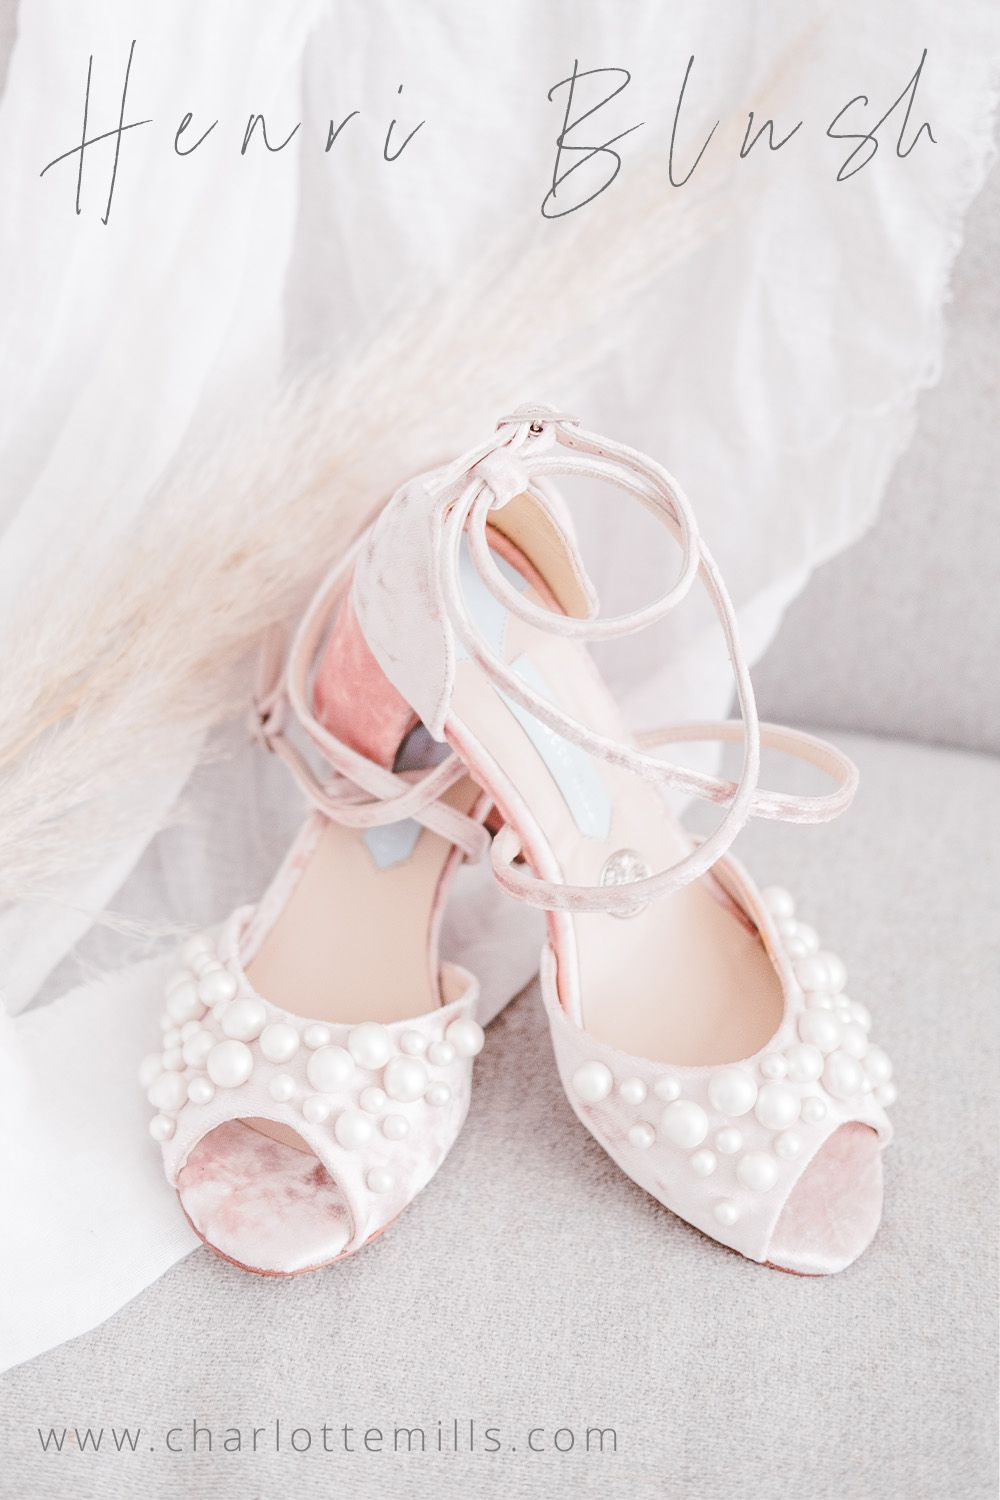 Crushed velvet luxury wedding shoes by Charlotte Mills